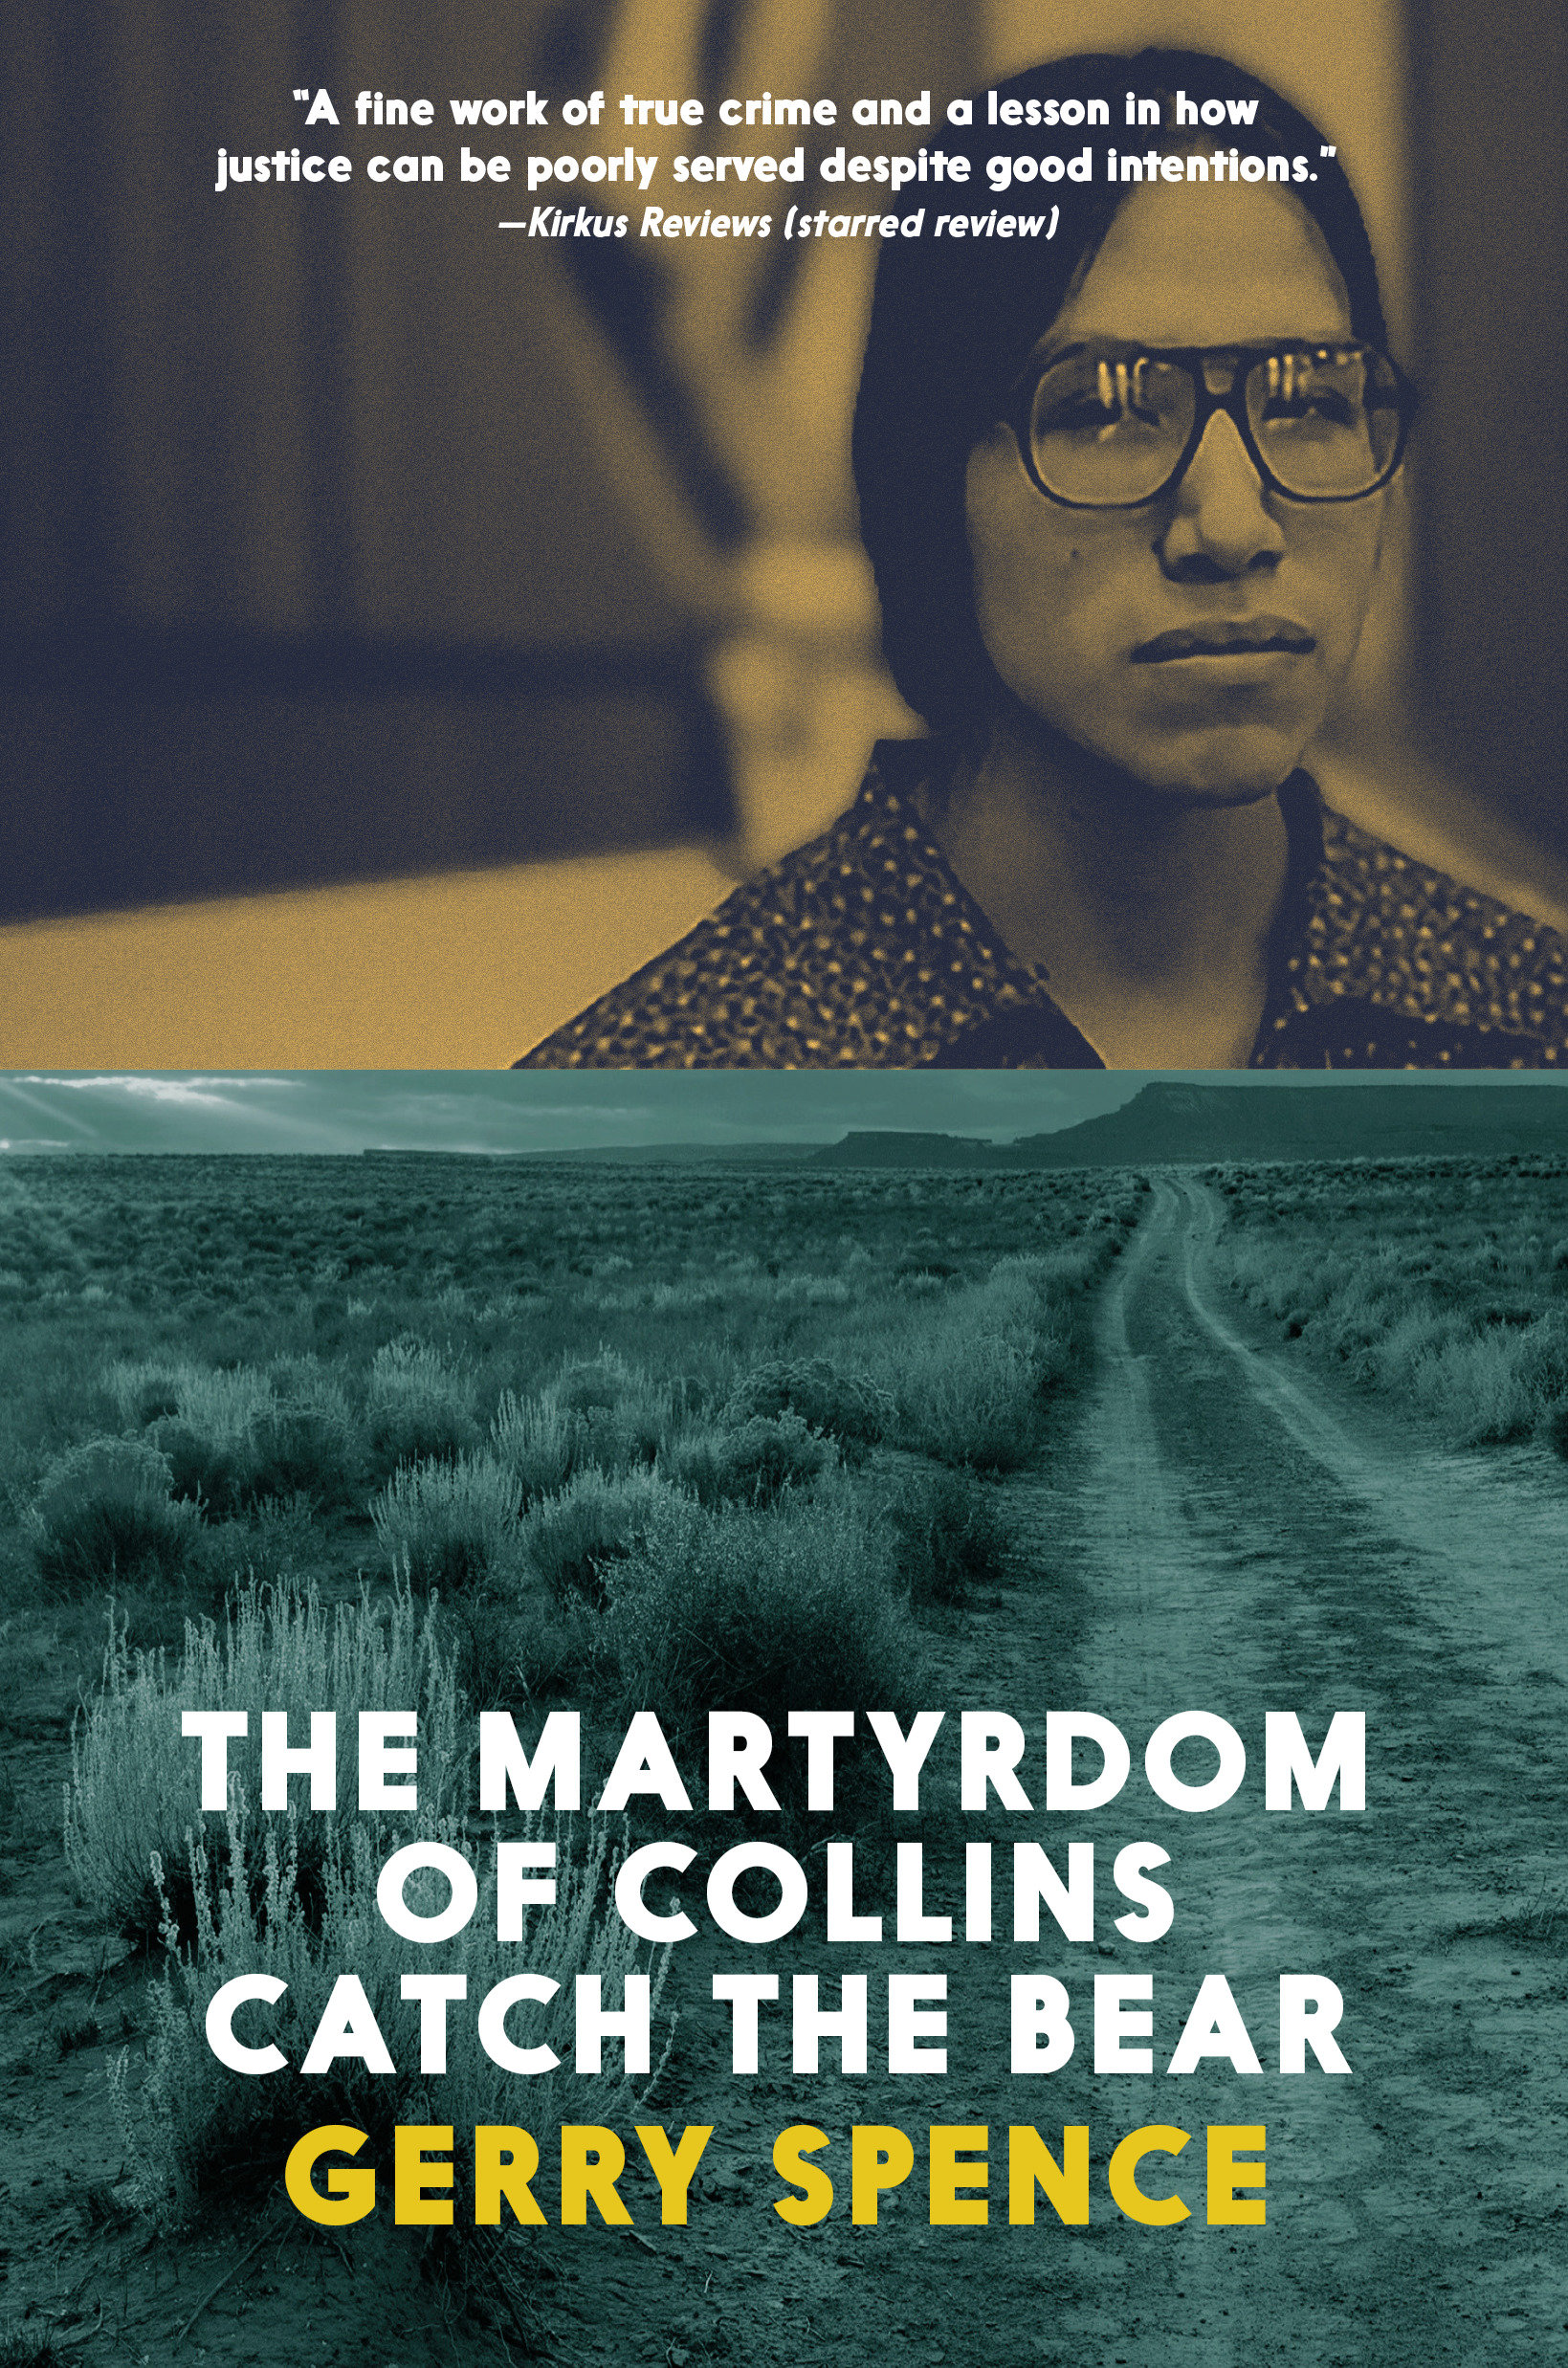 The Martyrdom of Collins Catch the Bear cover image